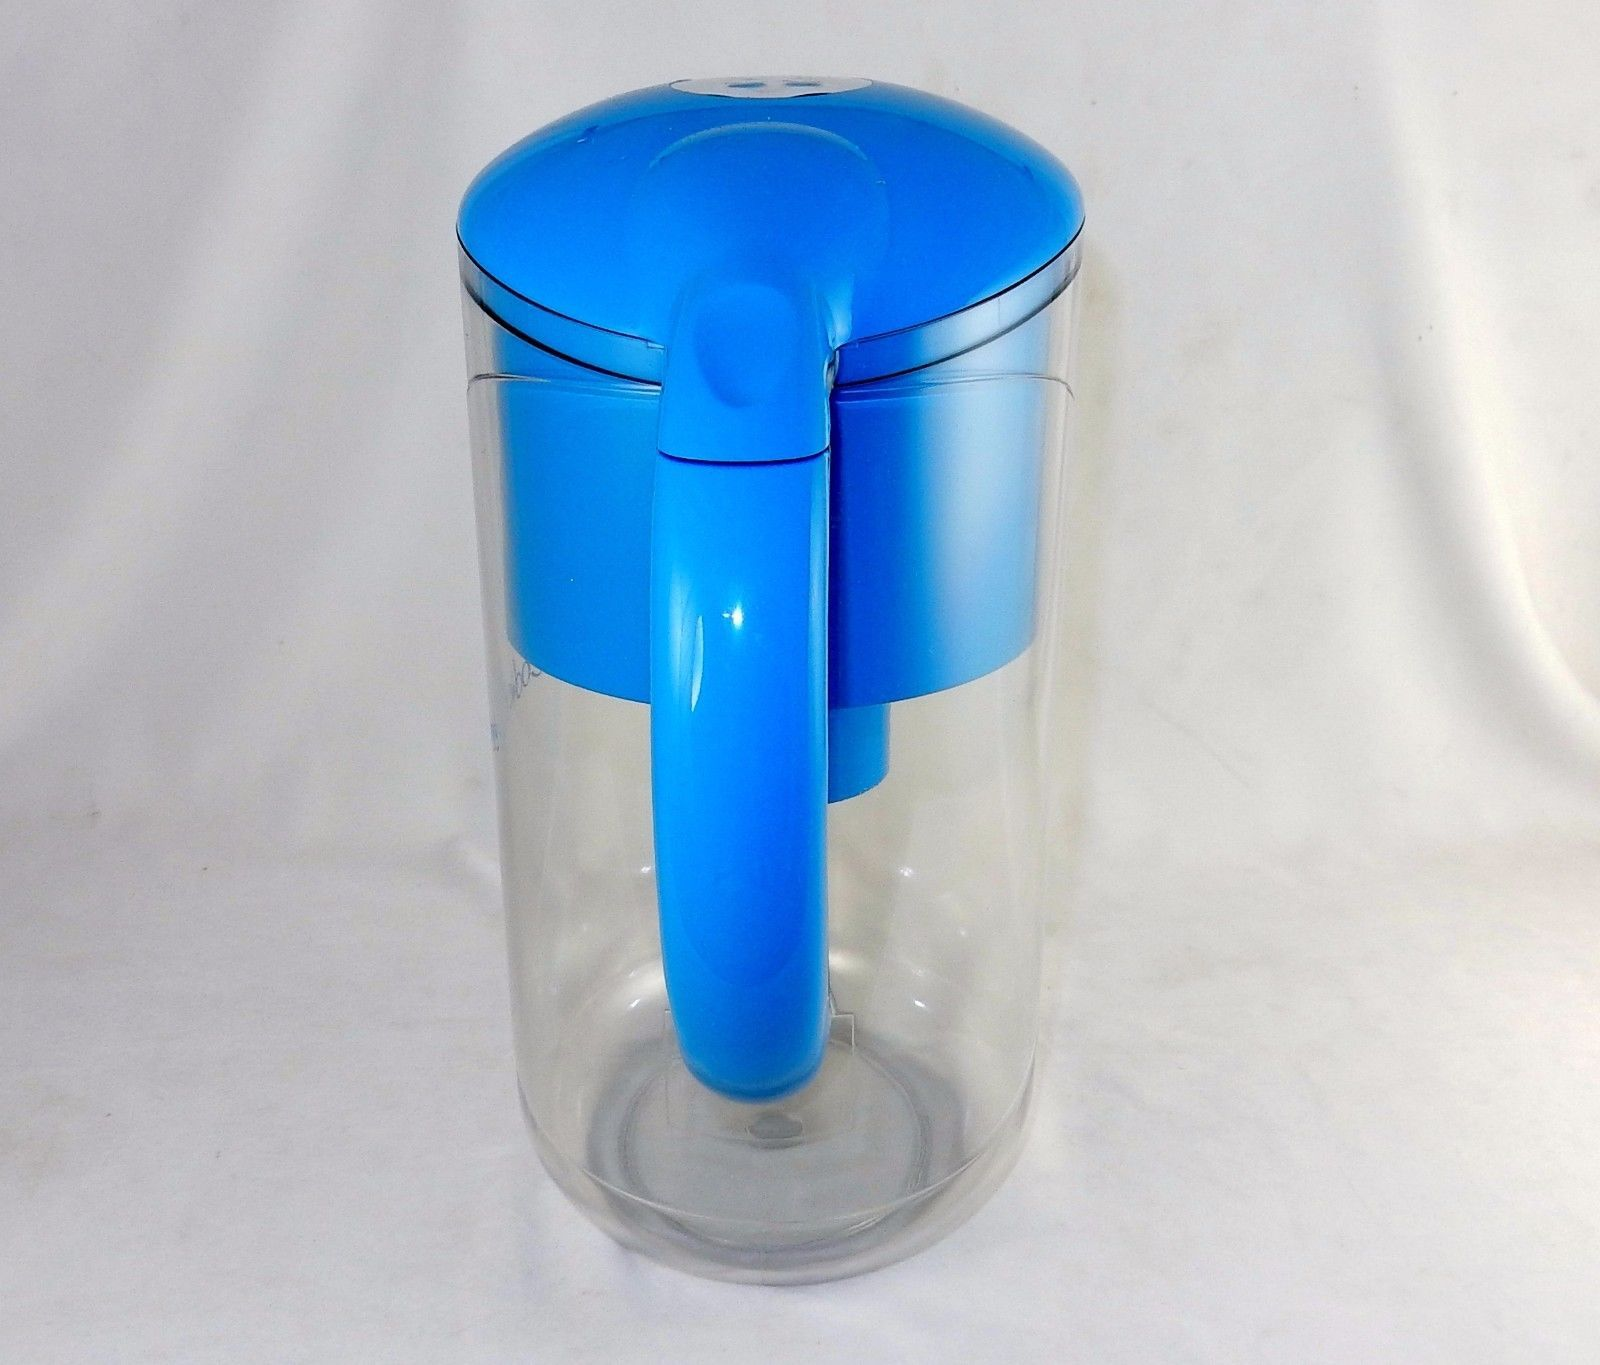 Digital Water Filtration Pitcher, 2 Qt, Code Blue, Removes Poisons, Cleans Water